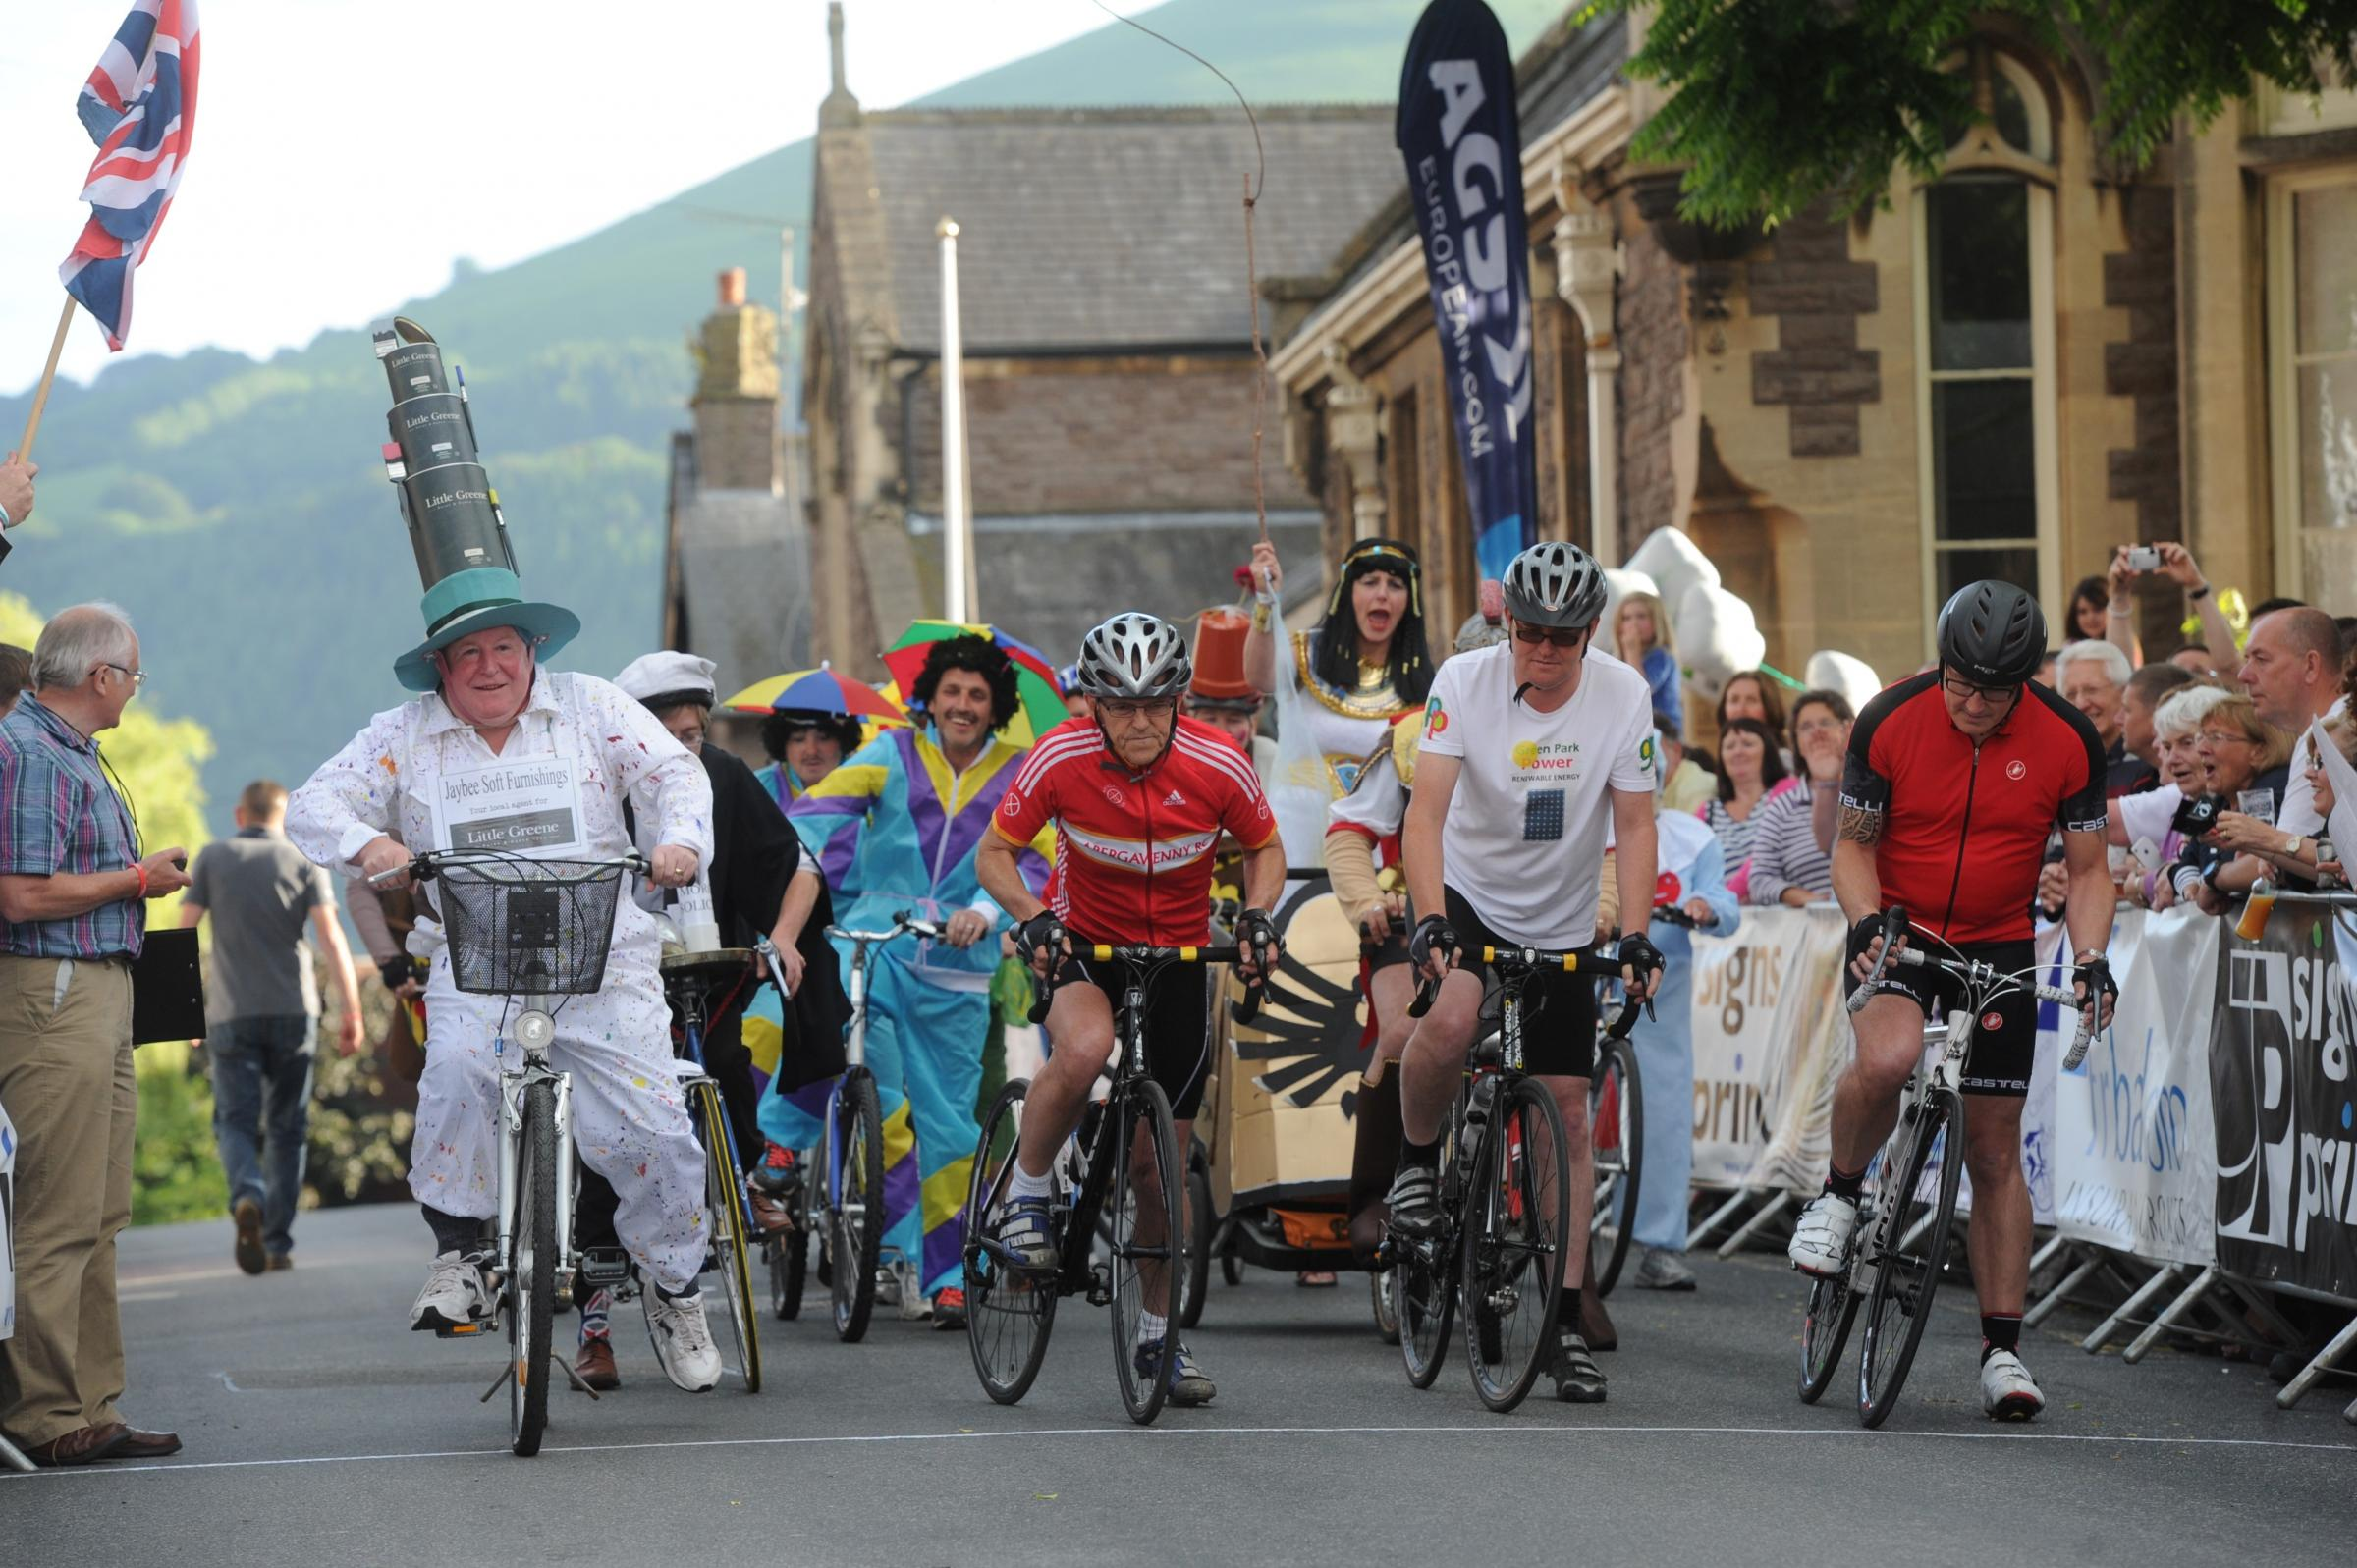 Crowds enjoy Abergavenny Festival of Cycling - as traders get into carnival spirit